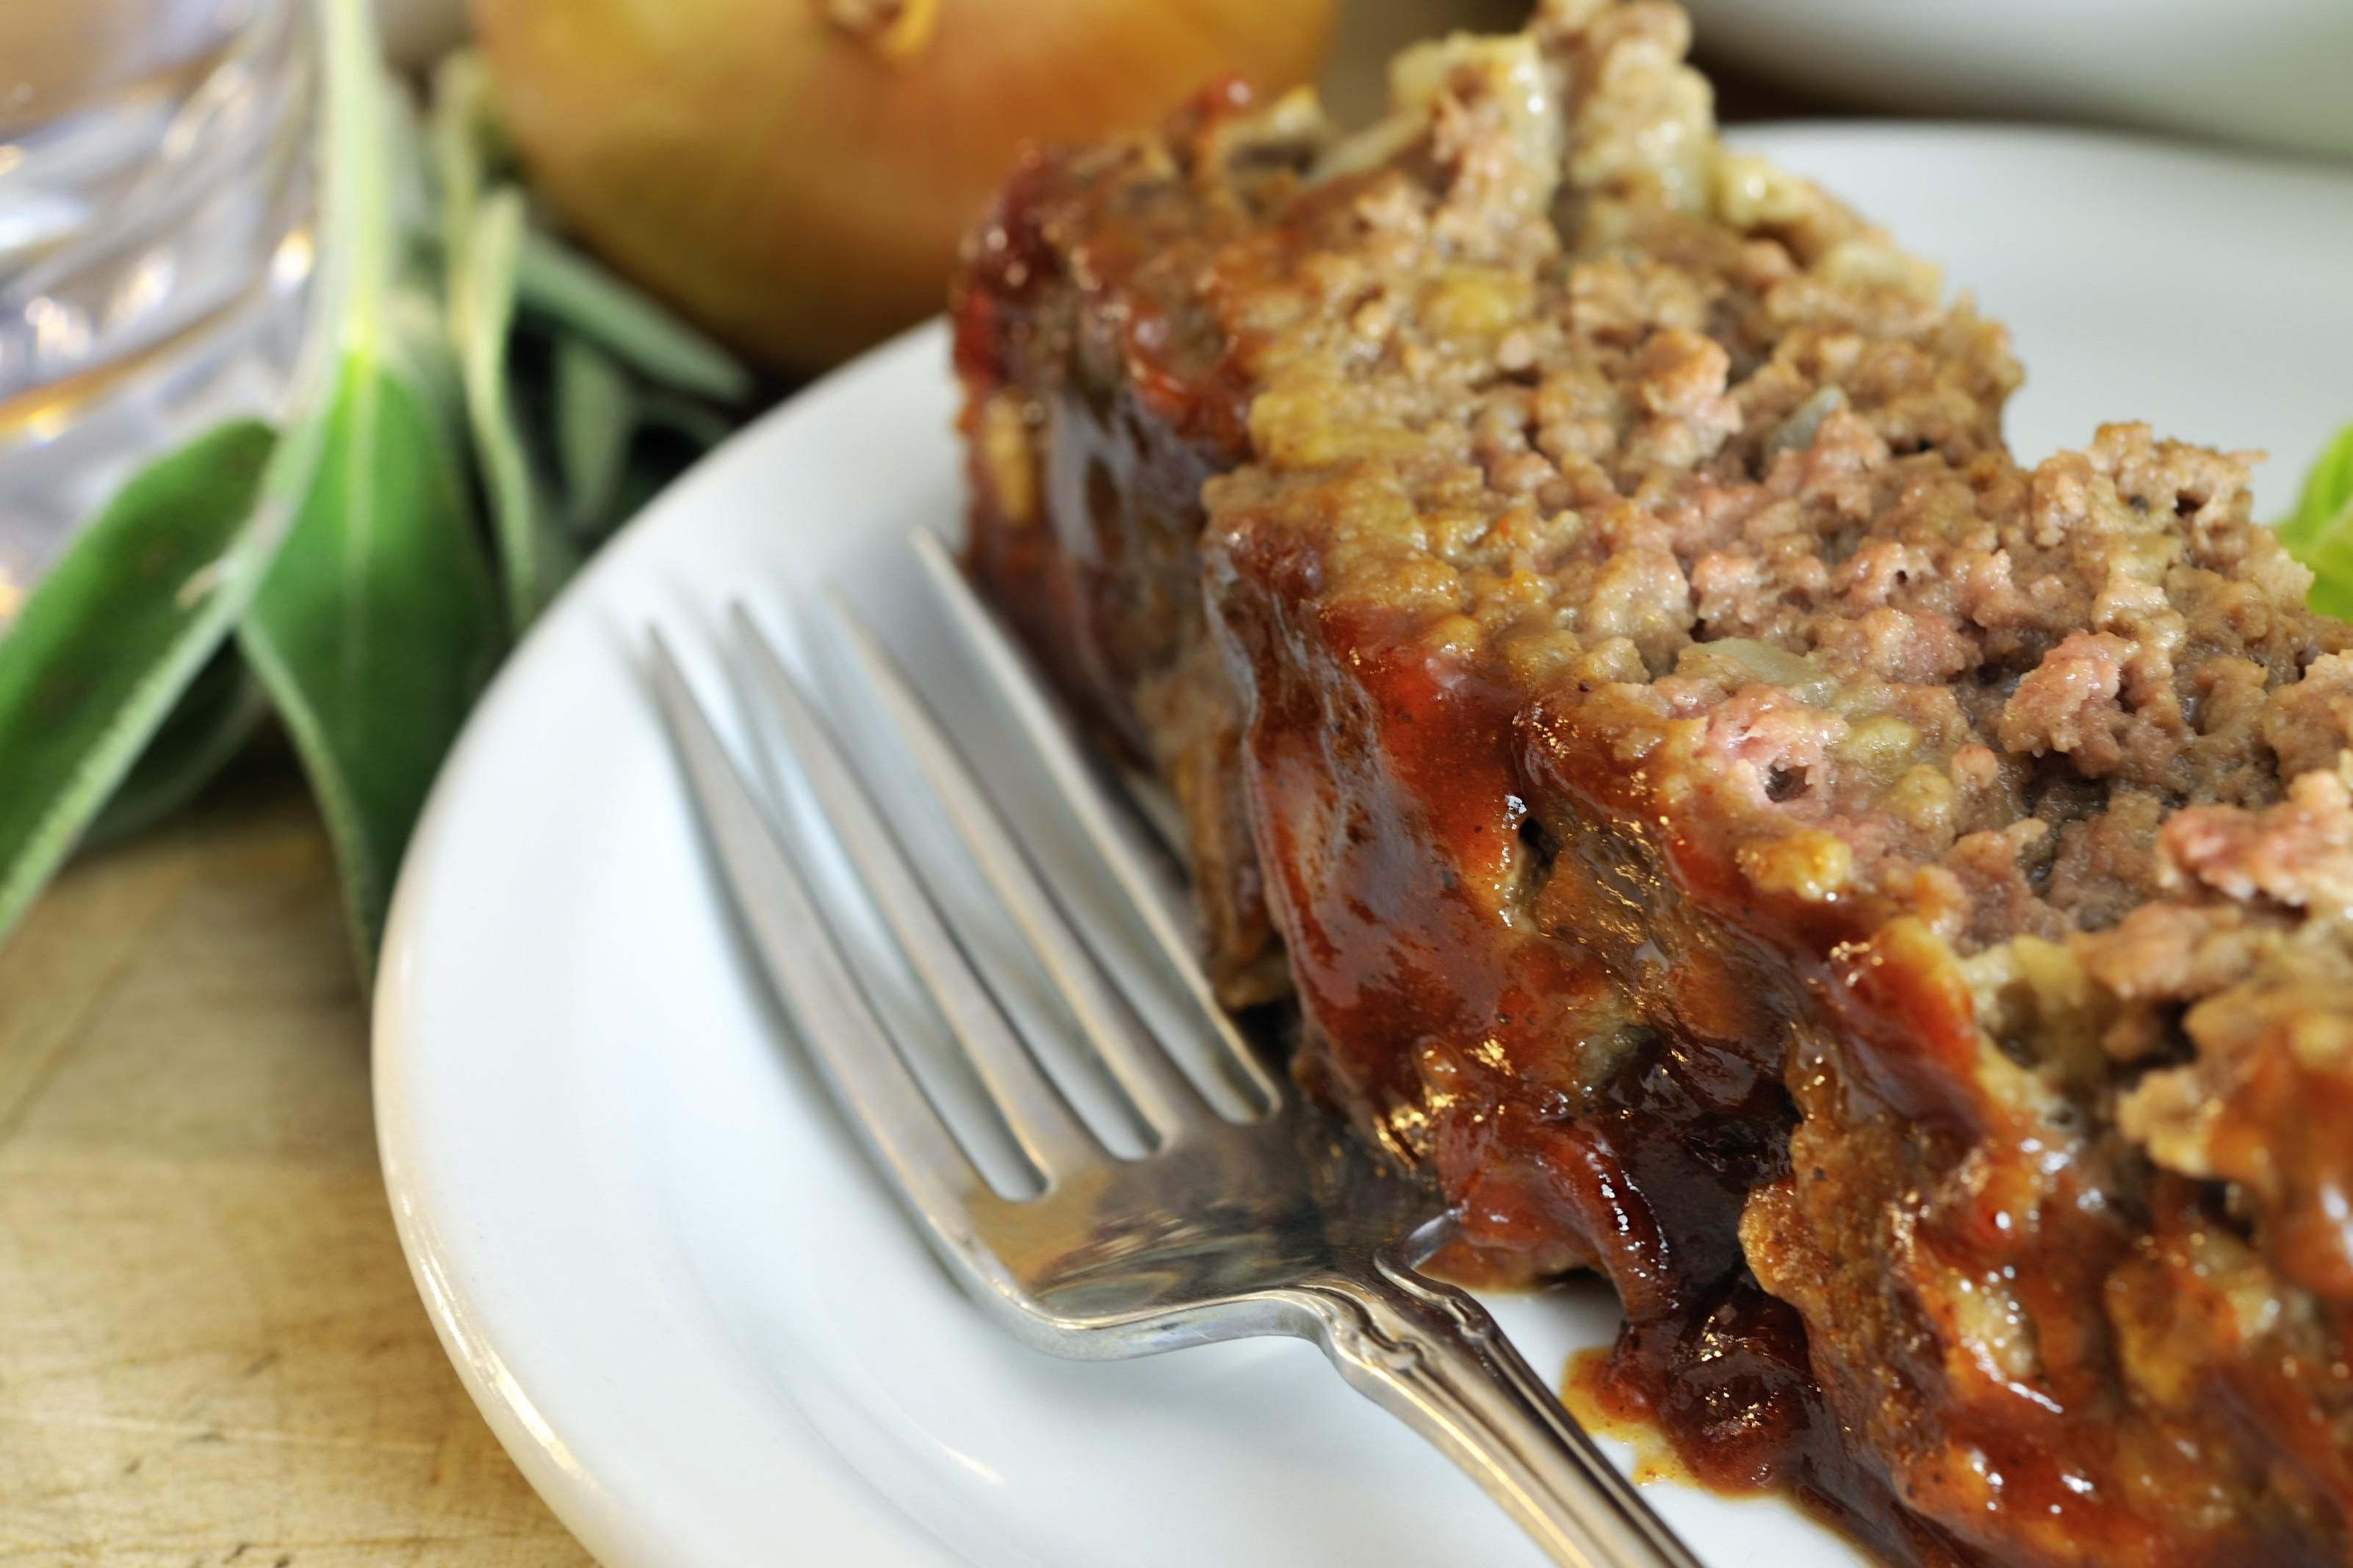 Polpettone della nonna al lambrusco italy wine food recipe a meatloaf fit for champions recipe forumfinder